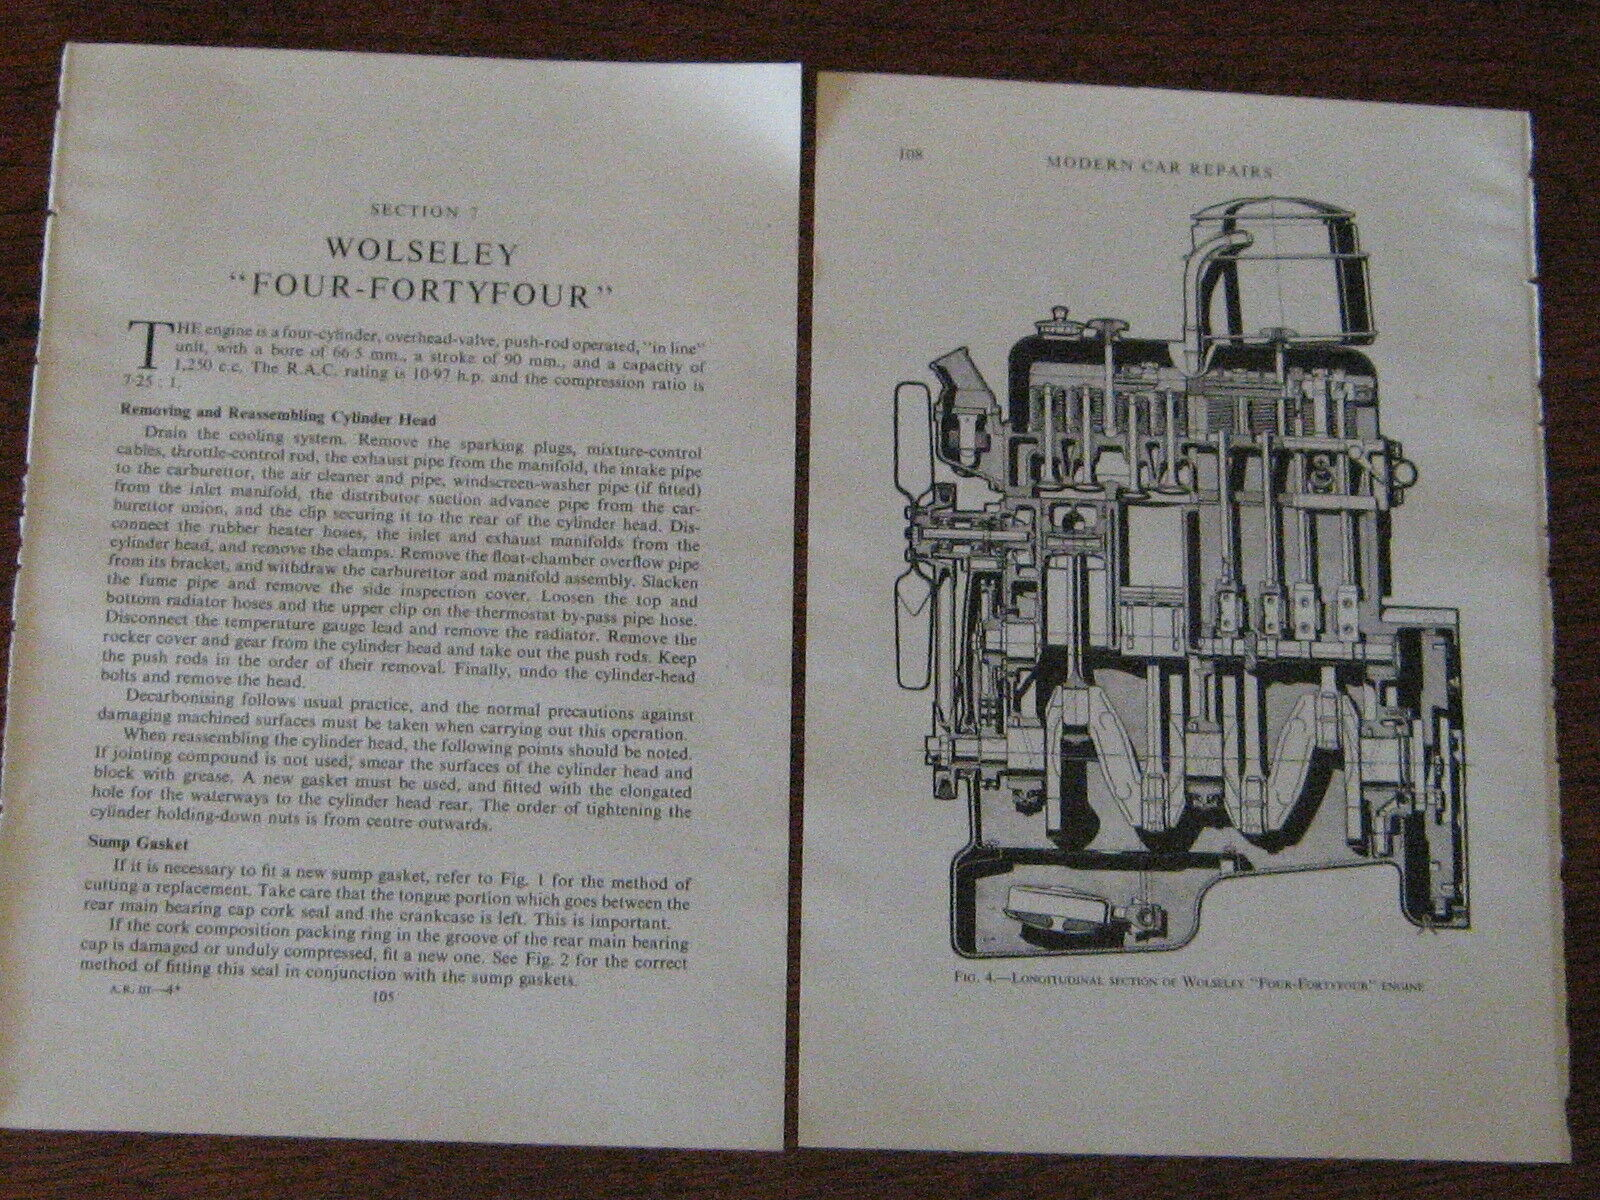 Wolseley Four Fortyfour 12pp Period 4 44 Service Wiring Diagrams Post Diagram 1950s Free 1 Of 3only Available See More